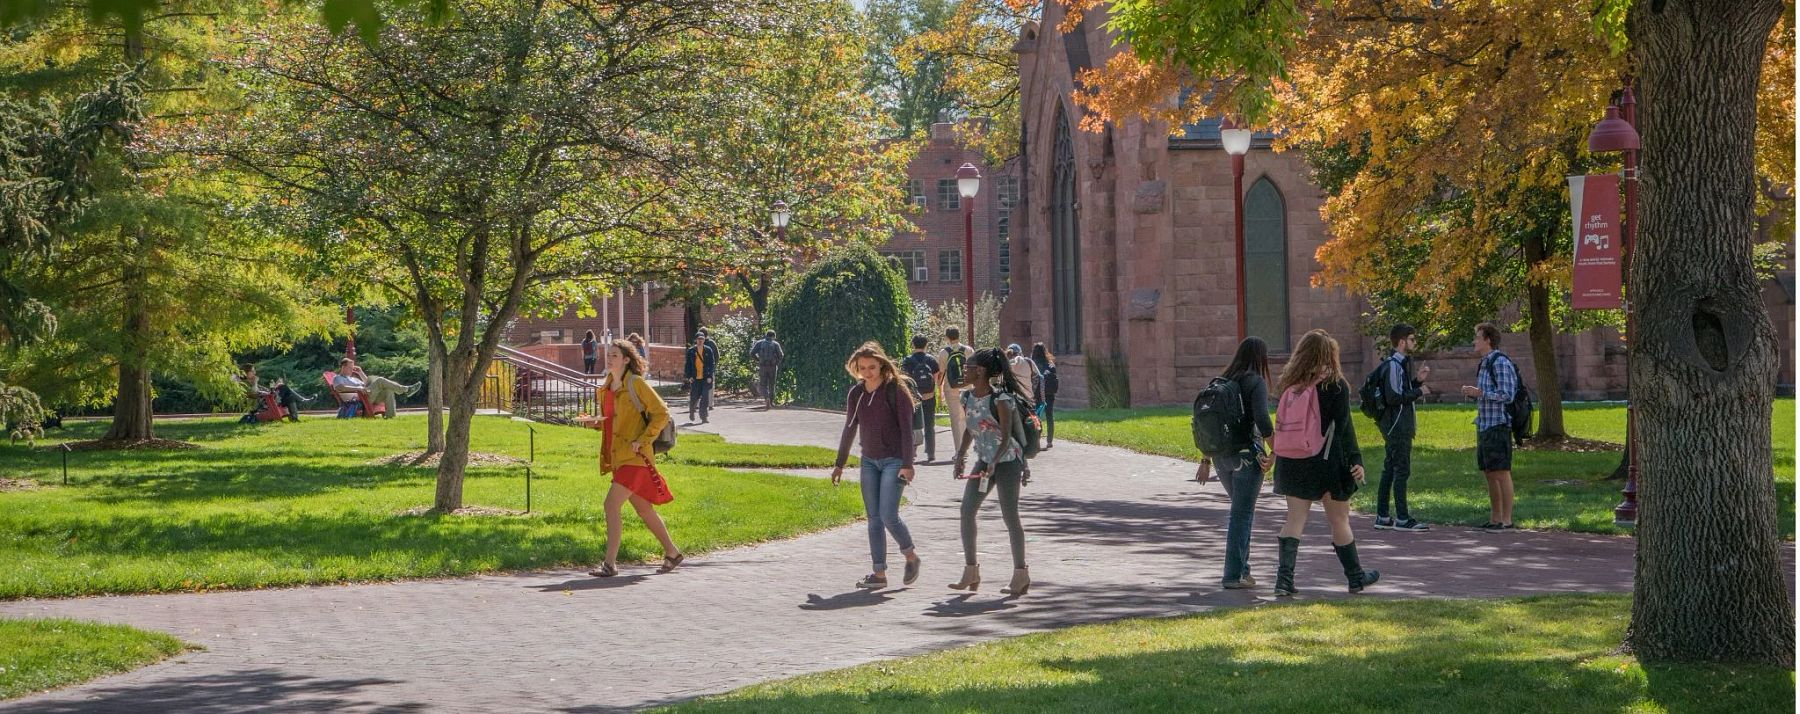 students walking across a sunny campus